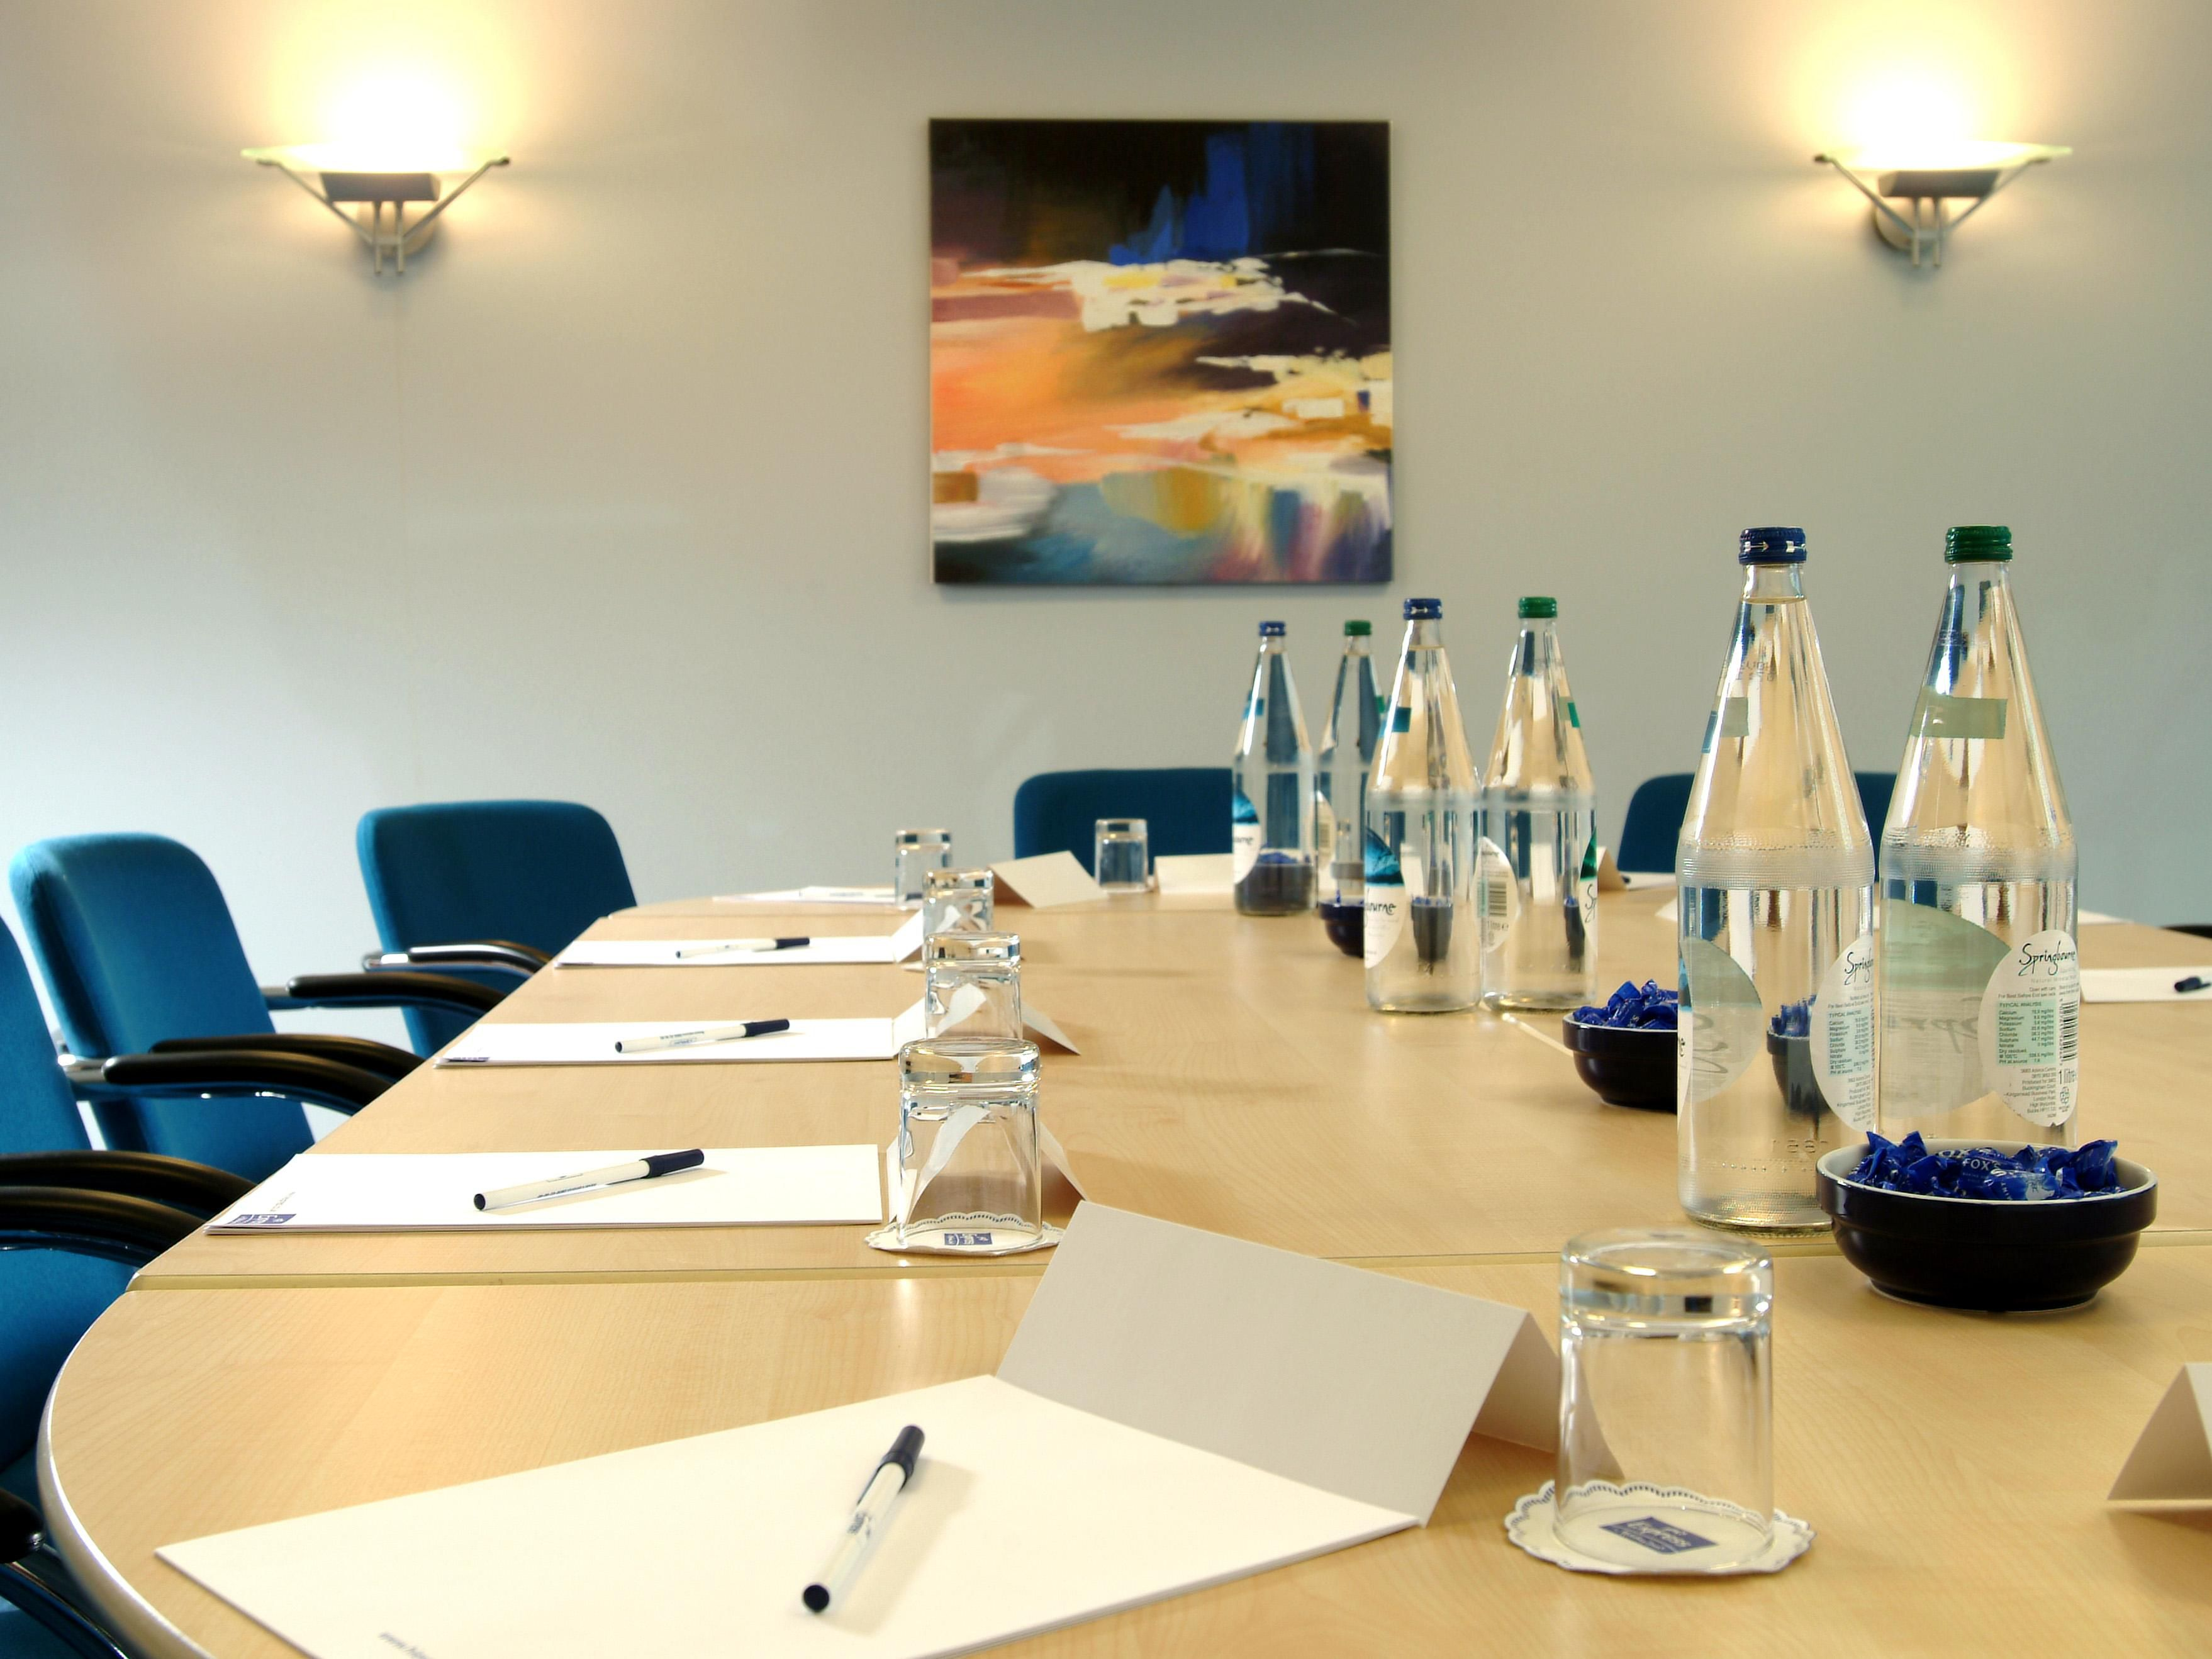 We can set up our conference rooms in a variety of styles